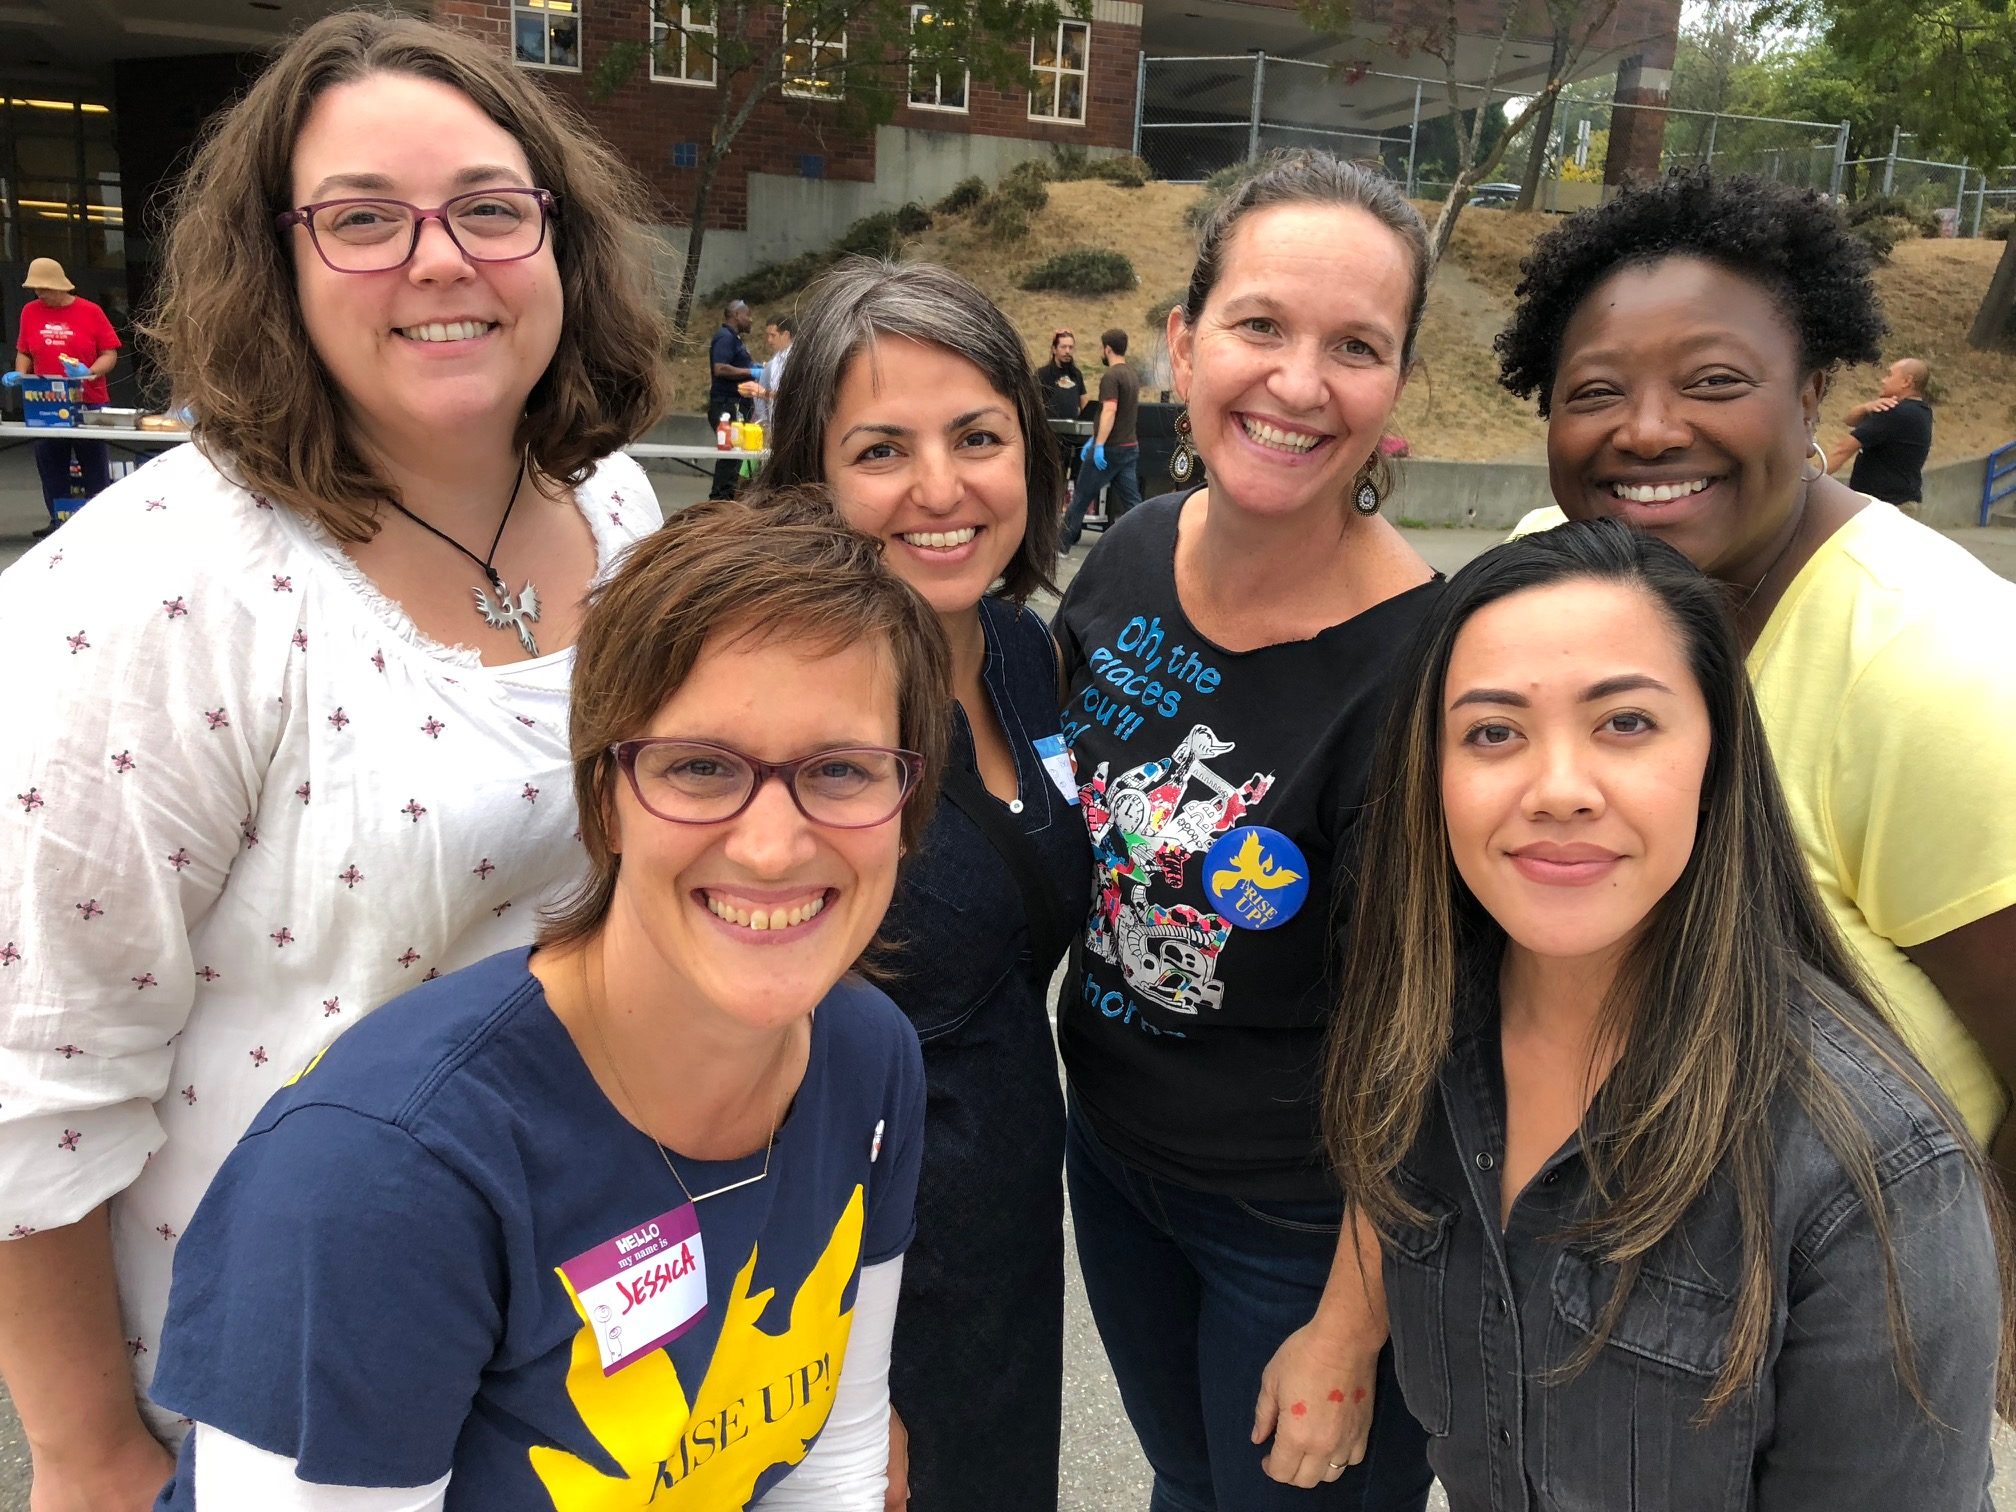 Meet your Friends of Hawthorne PTA Board!  Back row, from left: Maureen Merrill, Co-Treasurer; Behnosh Najafi, Co-President; Marita Grunfeld, Co-President; Angela Bell-Austin, Vice President. Front row, from left: Jessica Emerson, Co-Treasurer; Cherish Jackson, Secretary.